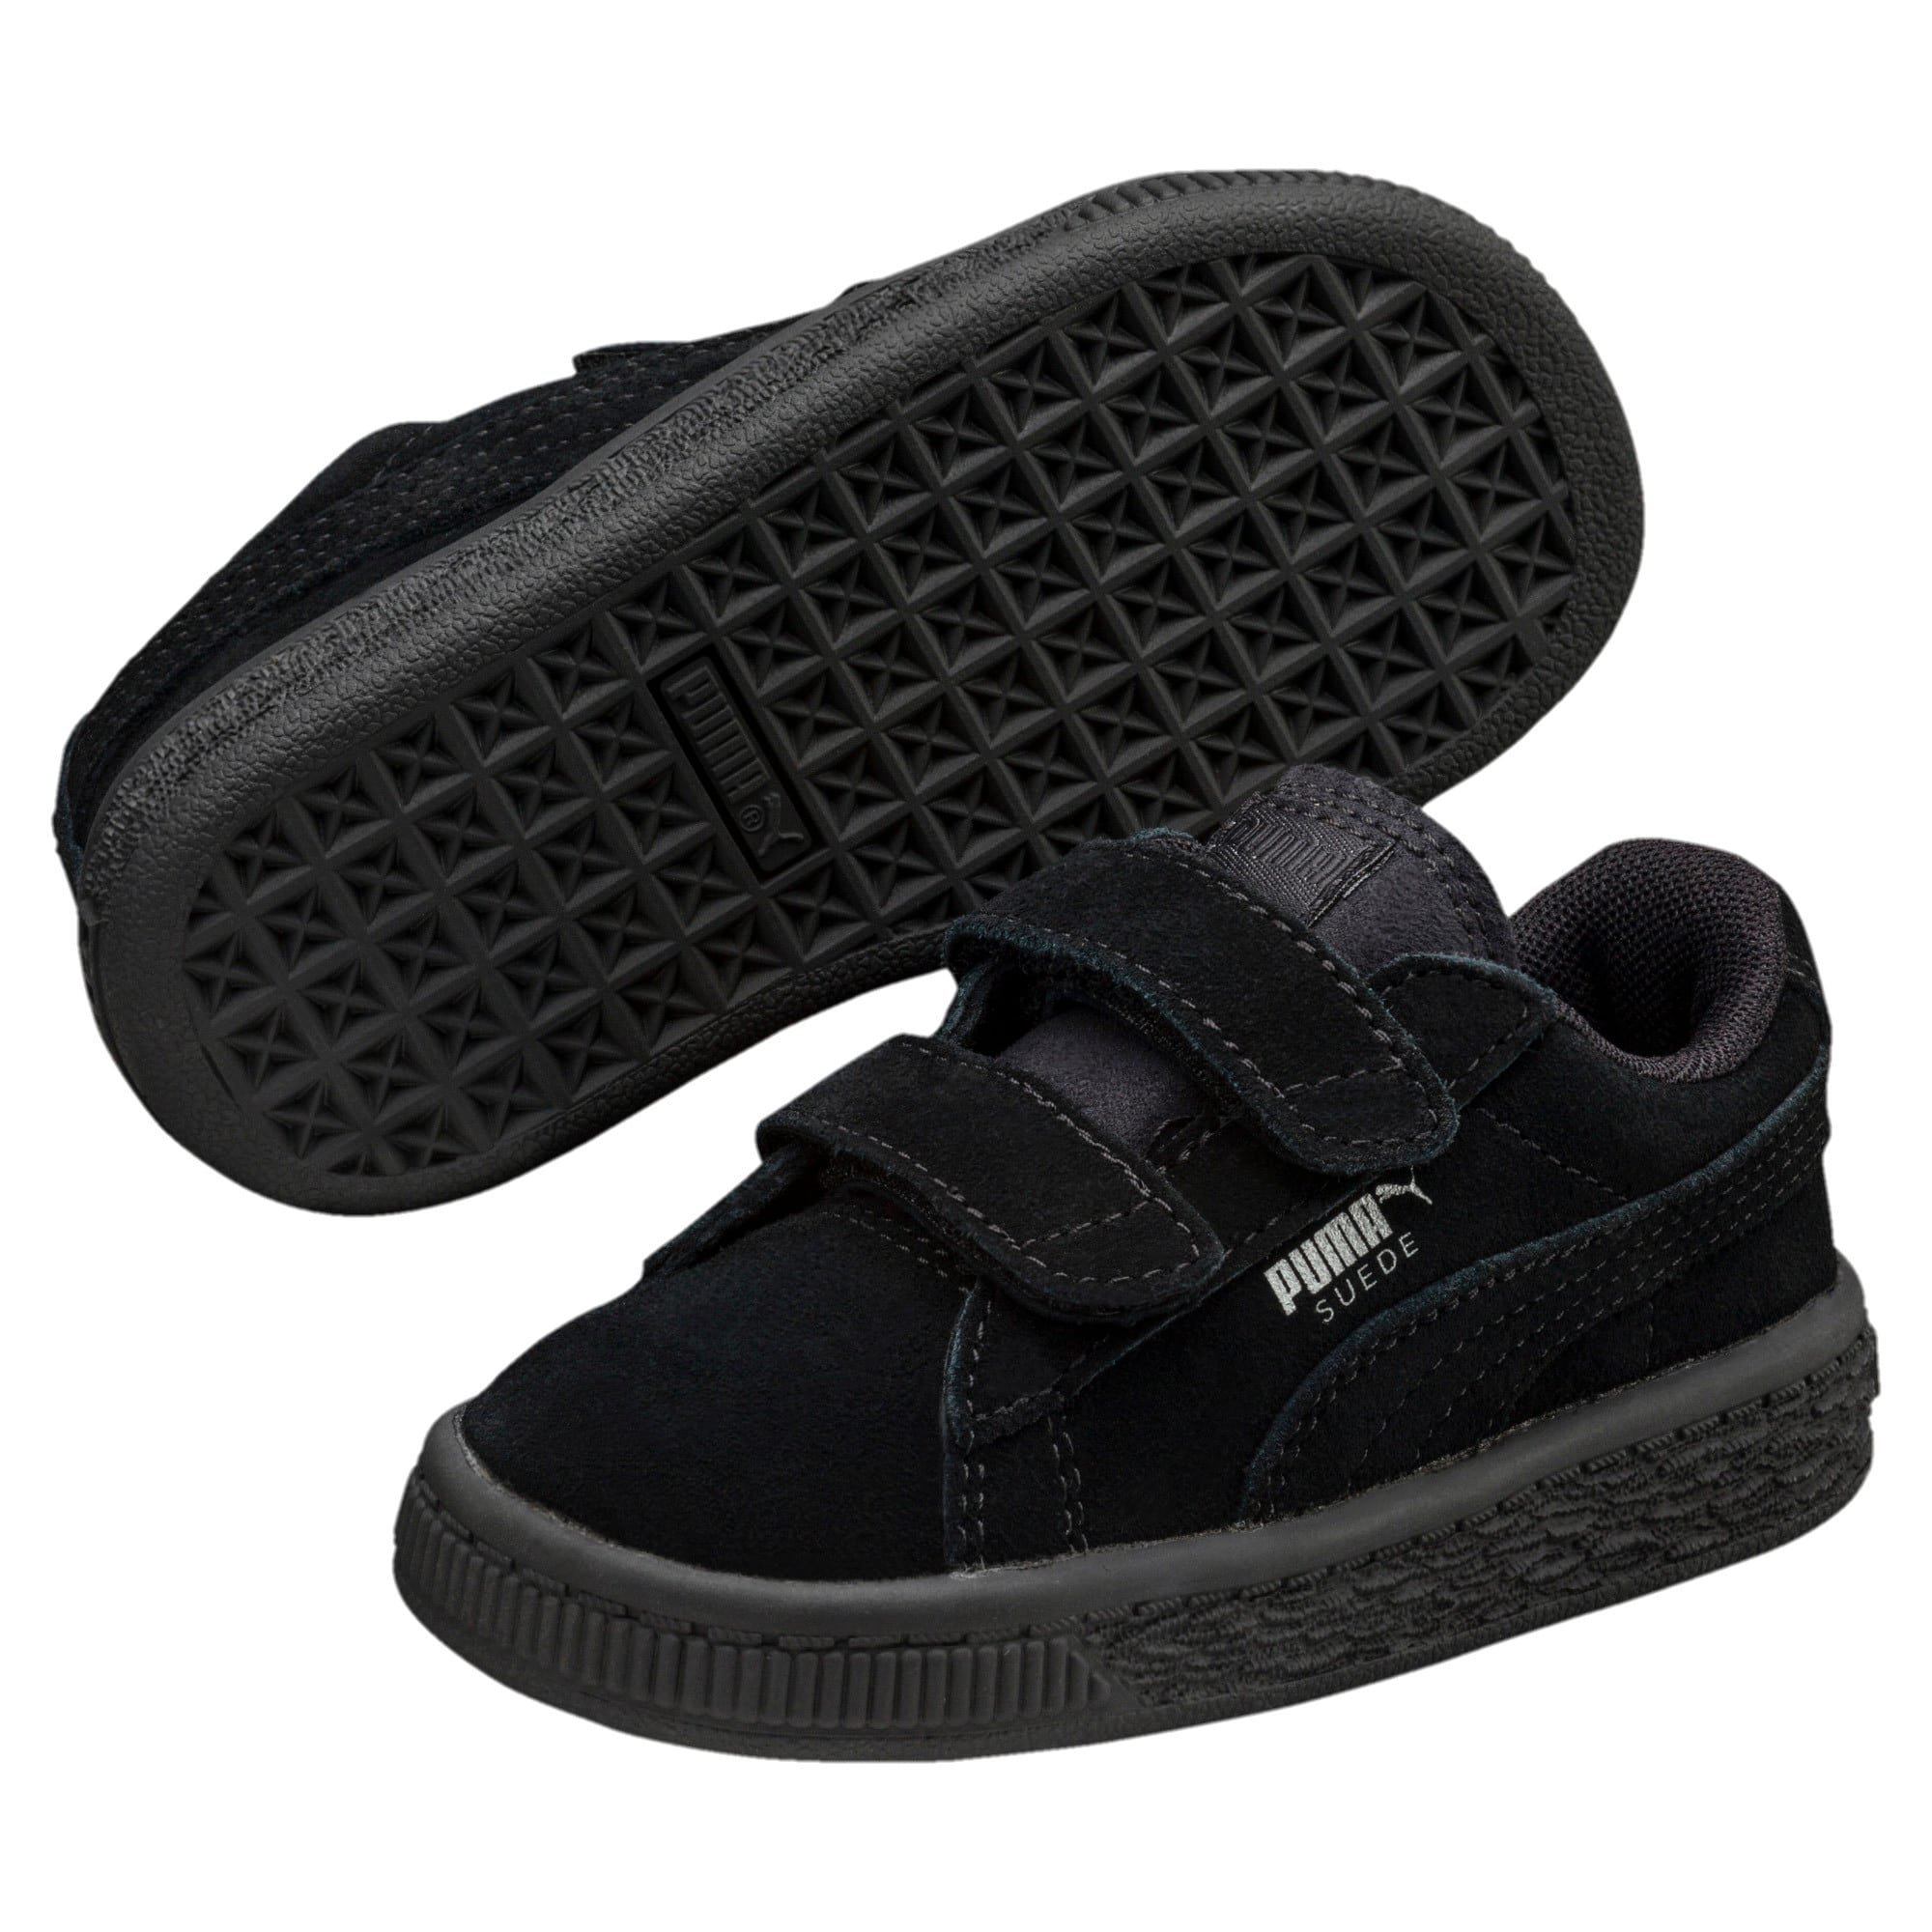 Thumbnail 2 of Suede Two-strap Babies' Trainers, Puma Black-Puma Silver, medium